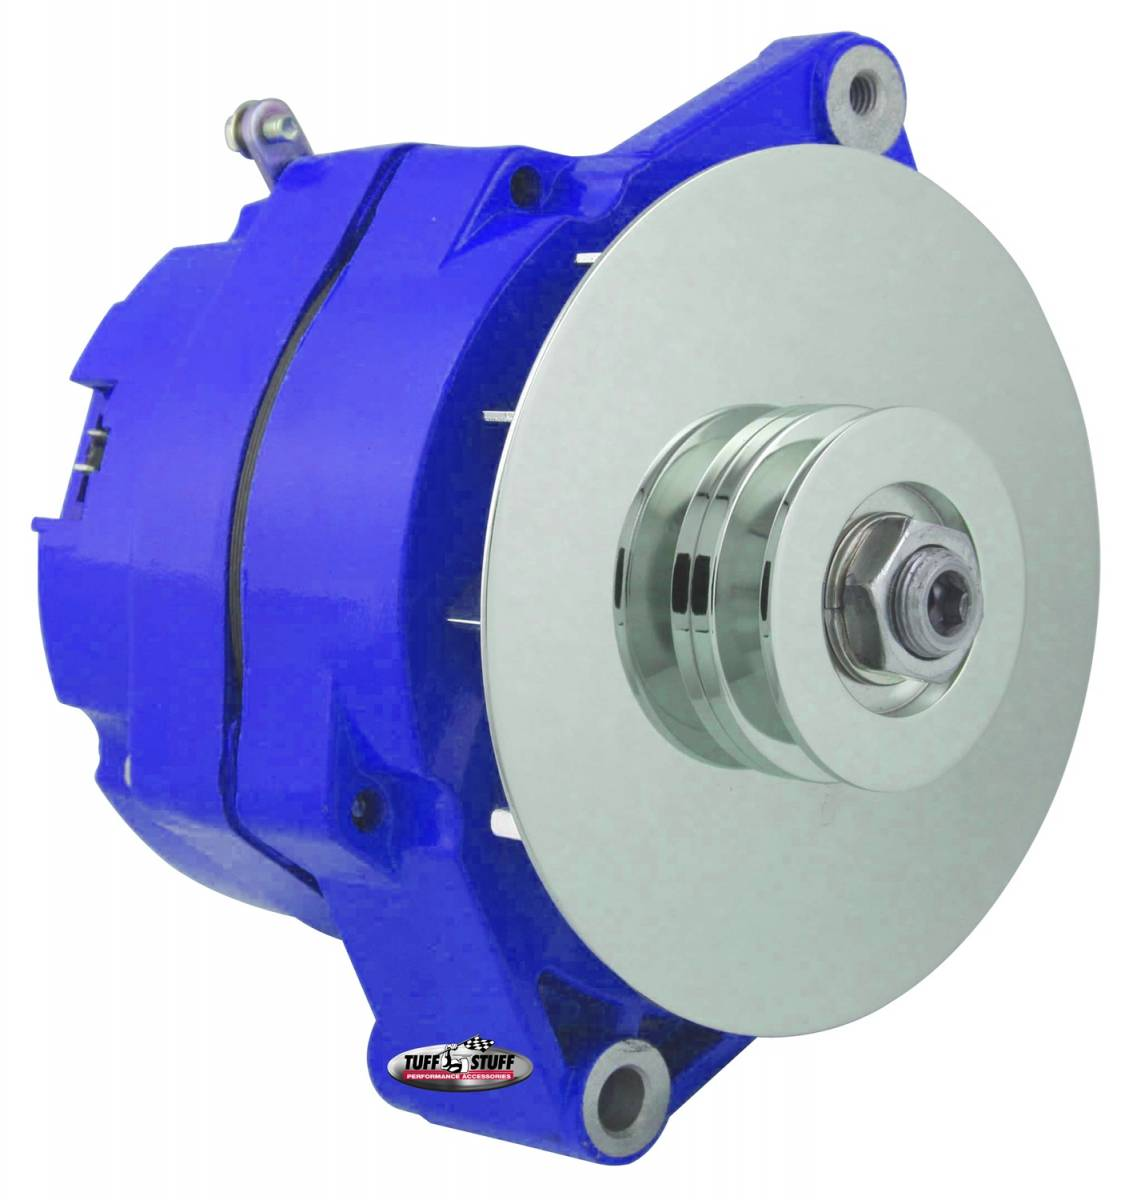 Tuff Stuff Performance - Alternator 80 AMP OEM Wire 10si Case V Groove Pulley External Regulator Blue Powdercoat w/Chrome Accents Must Be Used With An External Solid State Voltage Regulator 7102NFBLUE